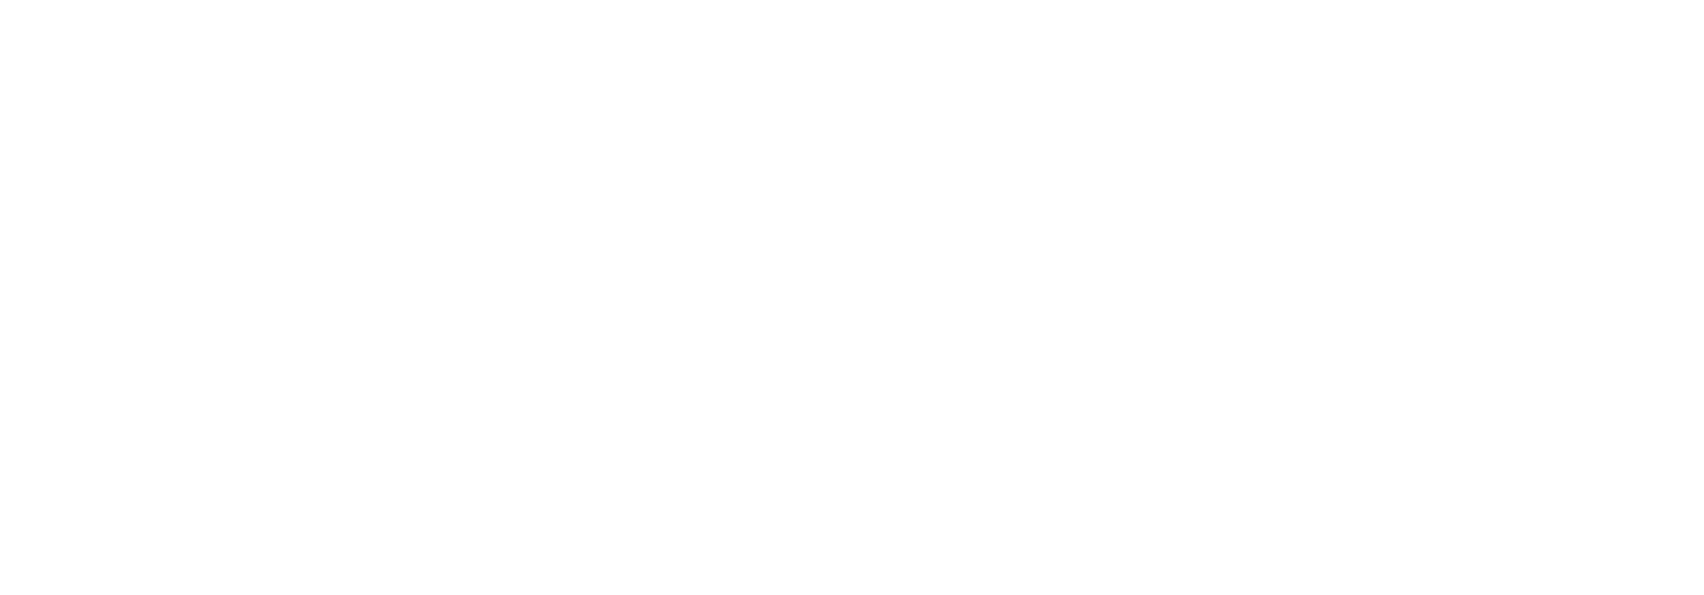 Forestia group smart outdoor solutions